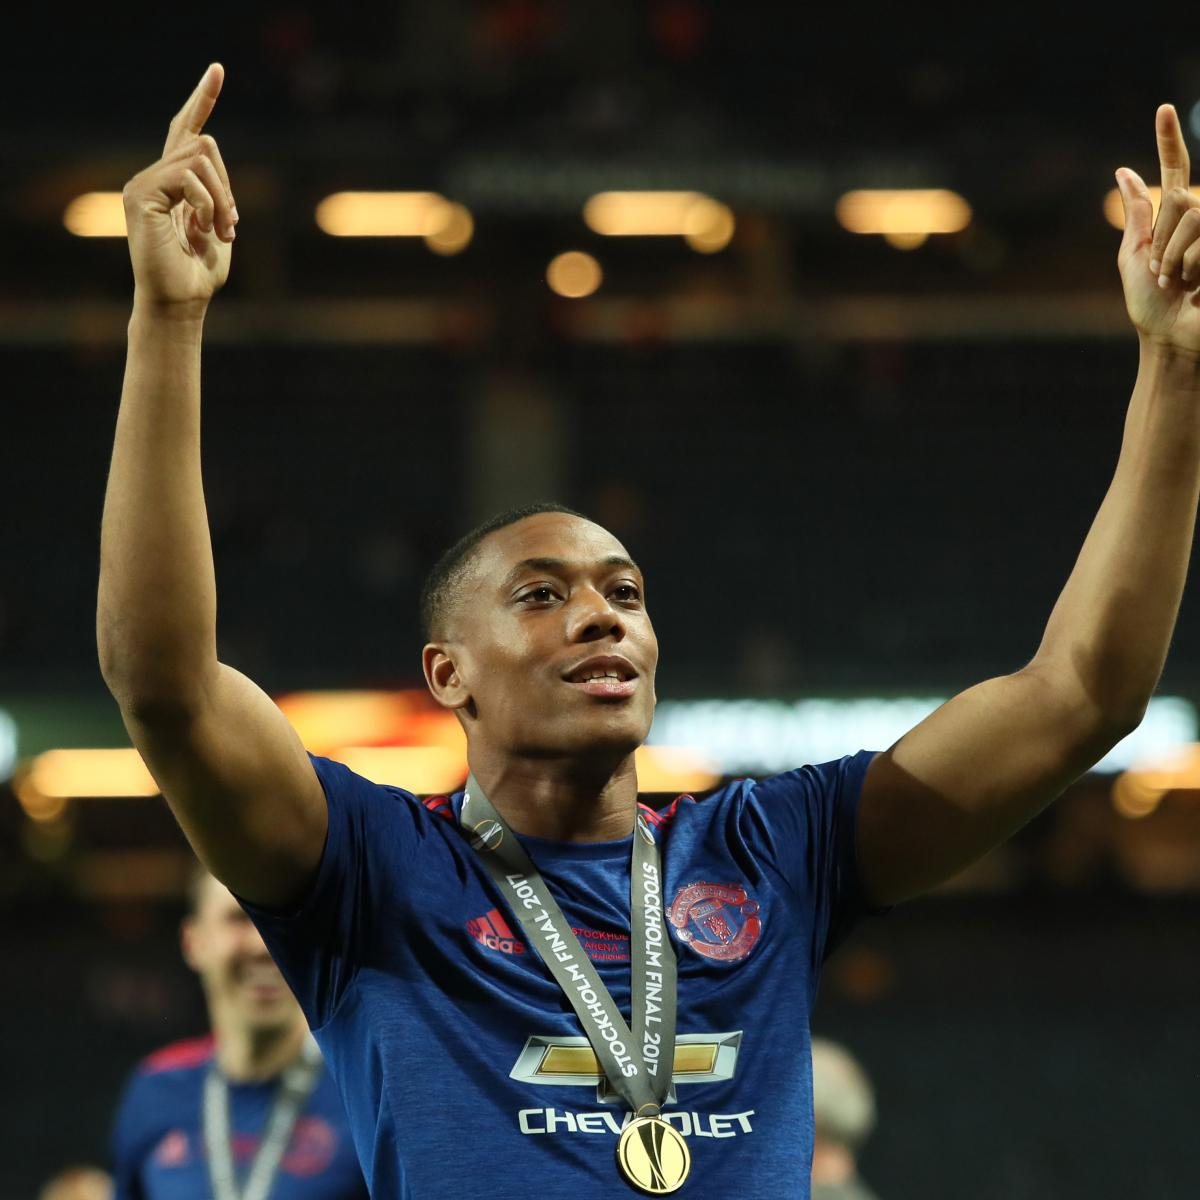 Manchester United S Anthony Martial Talks Debut Goal Vs: Anthony Martial Denies Rumours He Will Leave Manchester